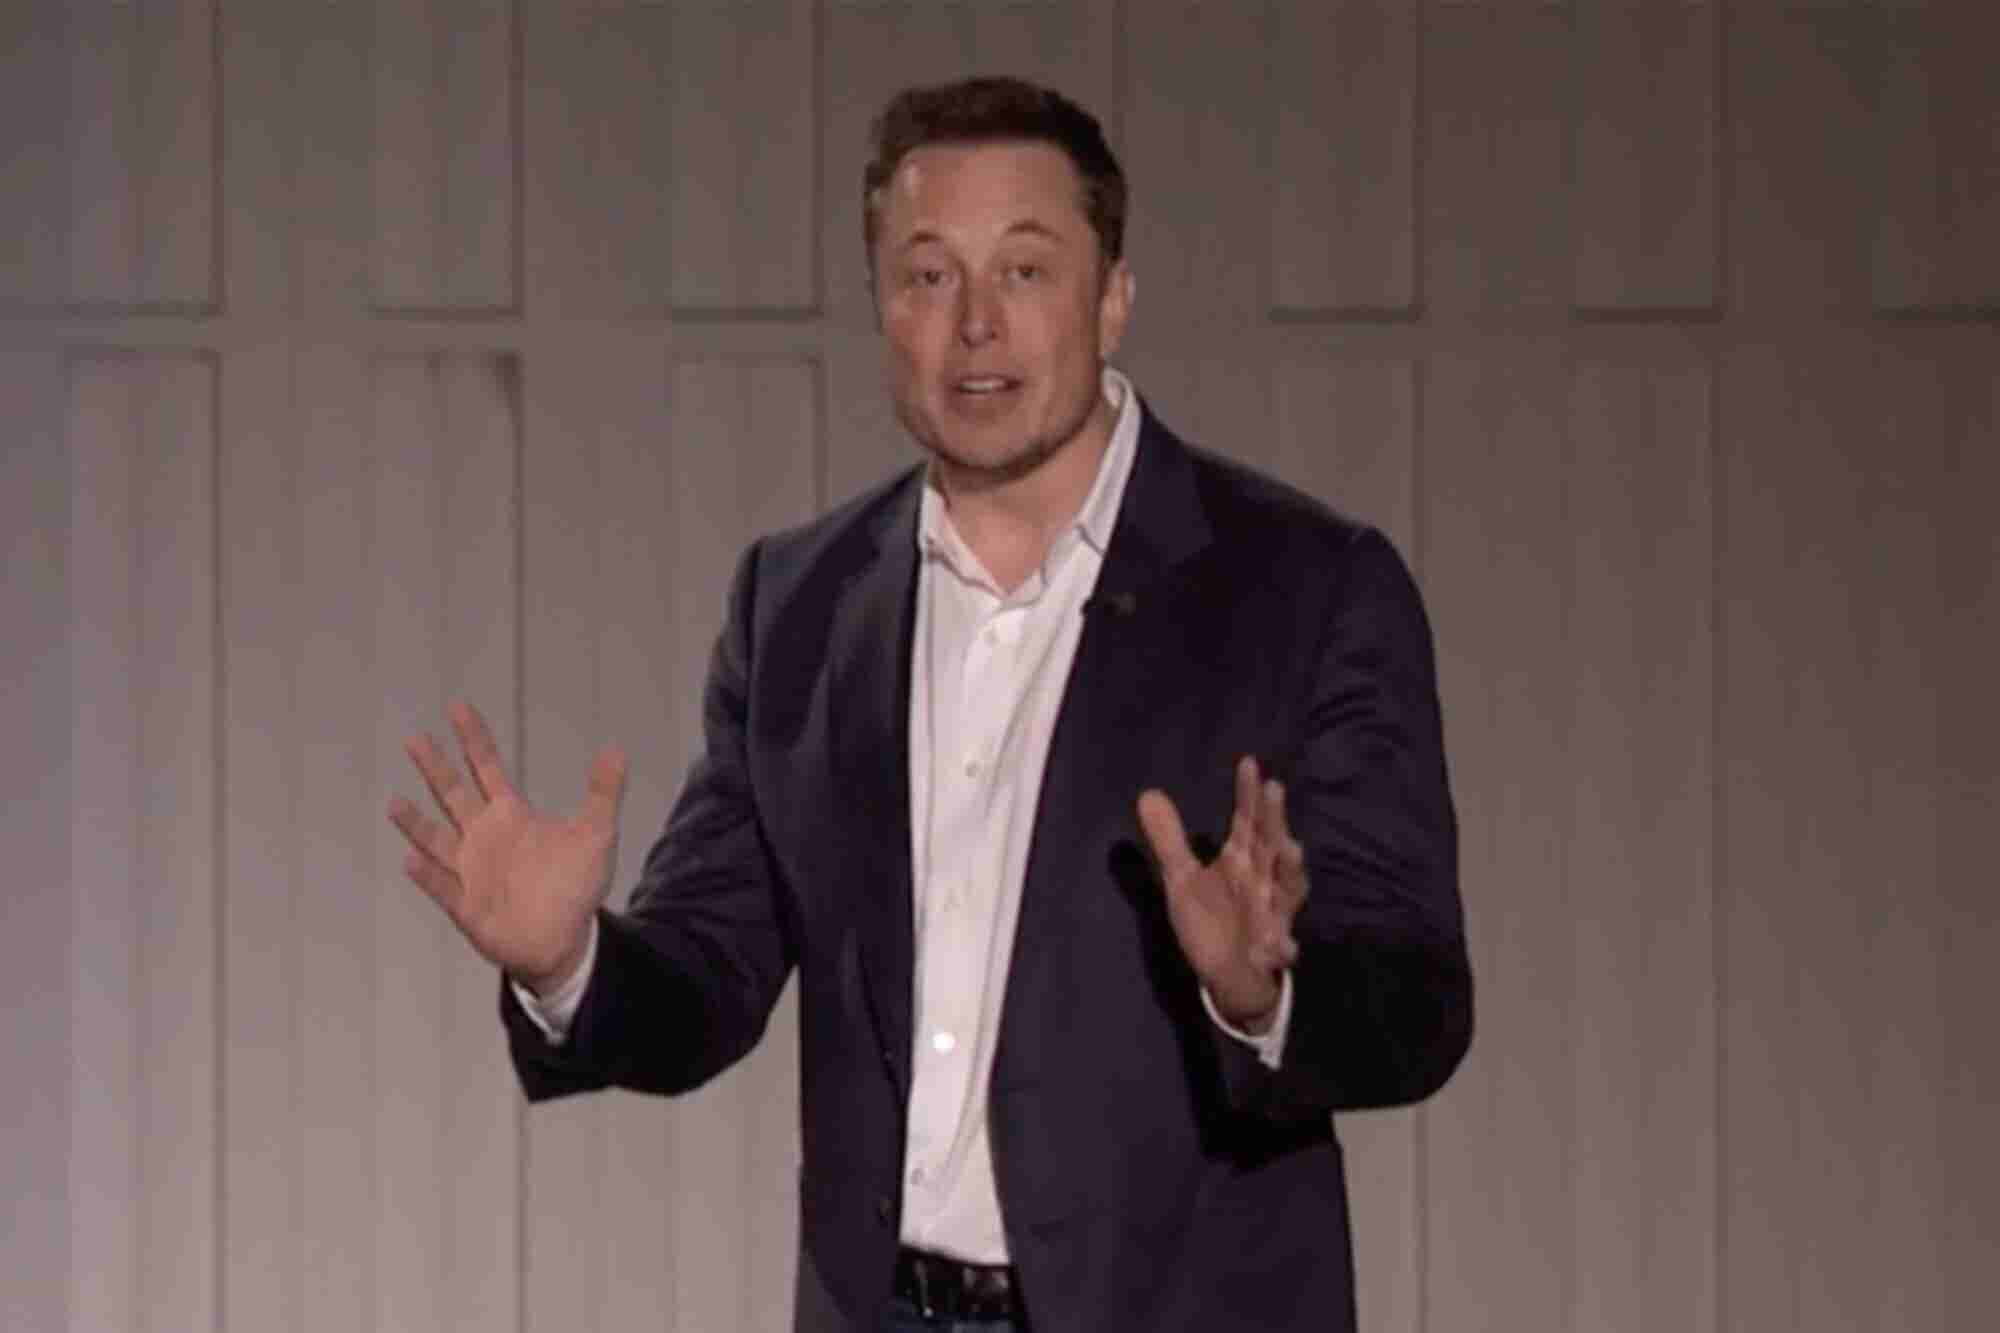 Elon Musk's Pentagon Security Clearance Is Under Review Over Marijuana Use